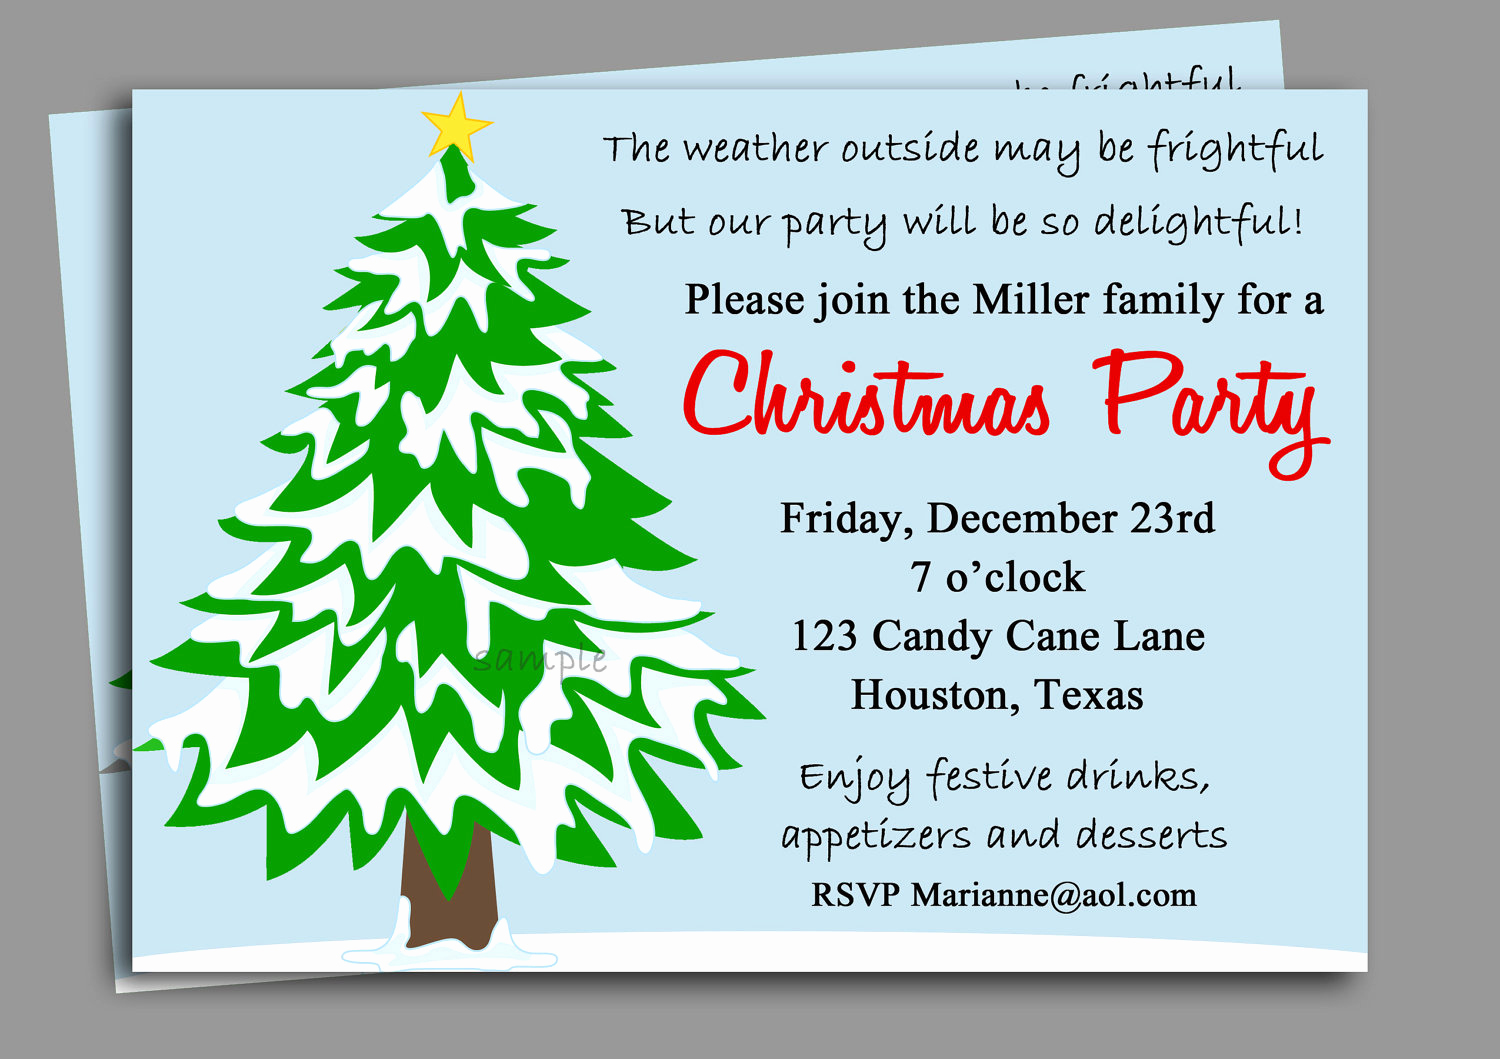 Office Holiday Party Invitation Wording Elegant Fice Holiday Party Invitation Templates